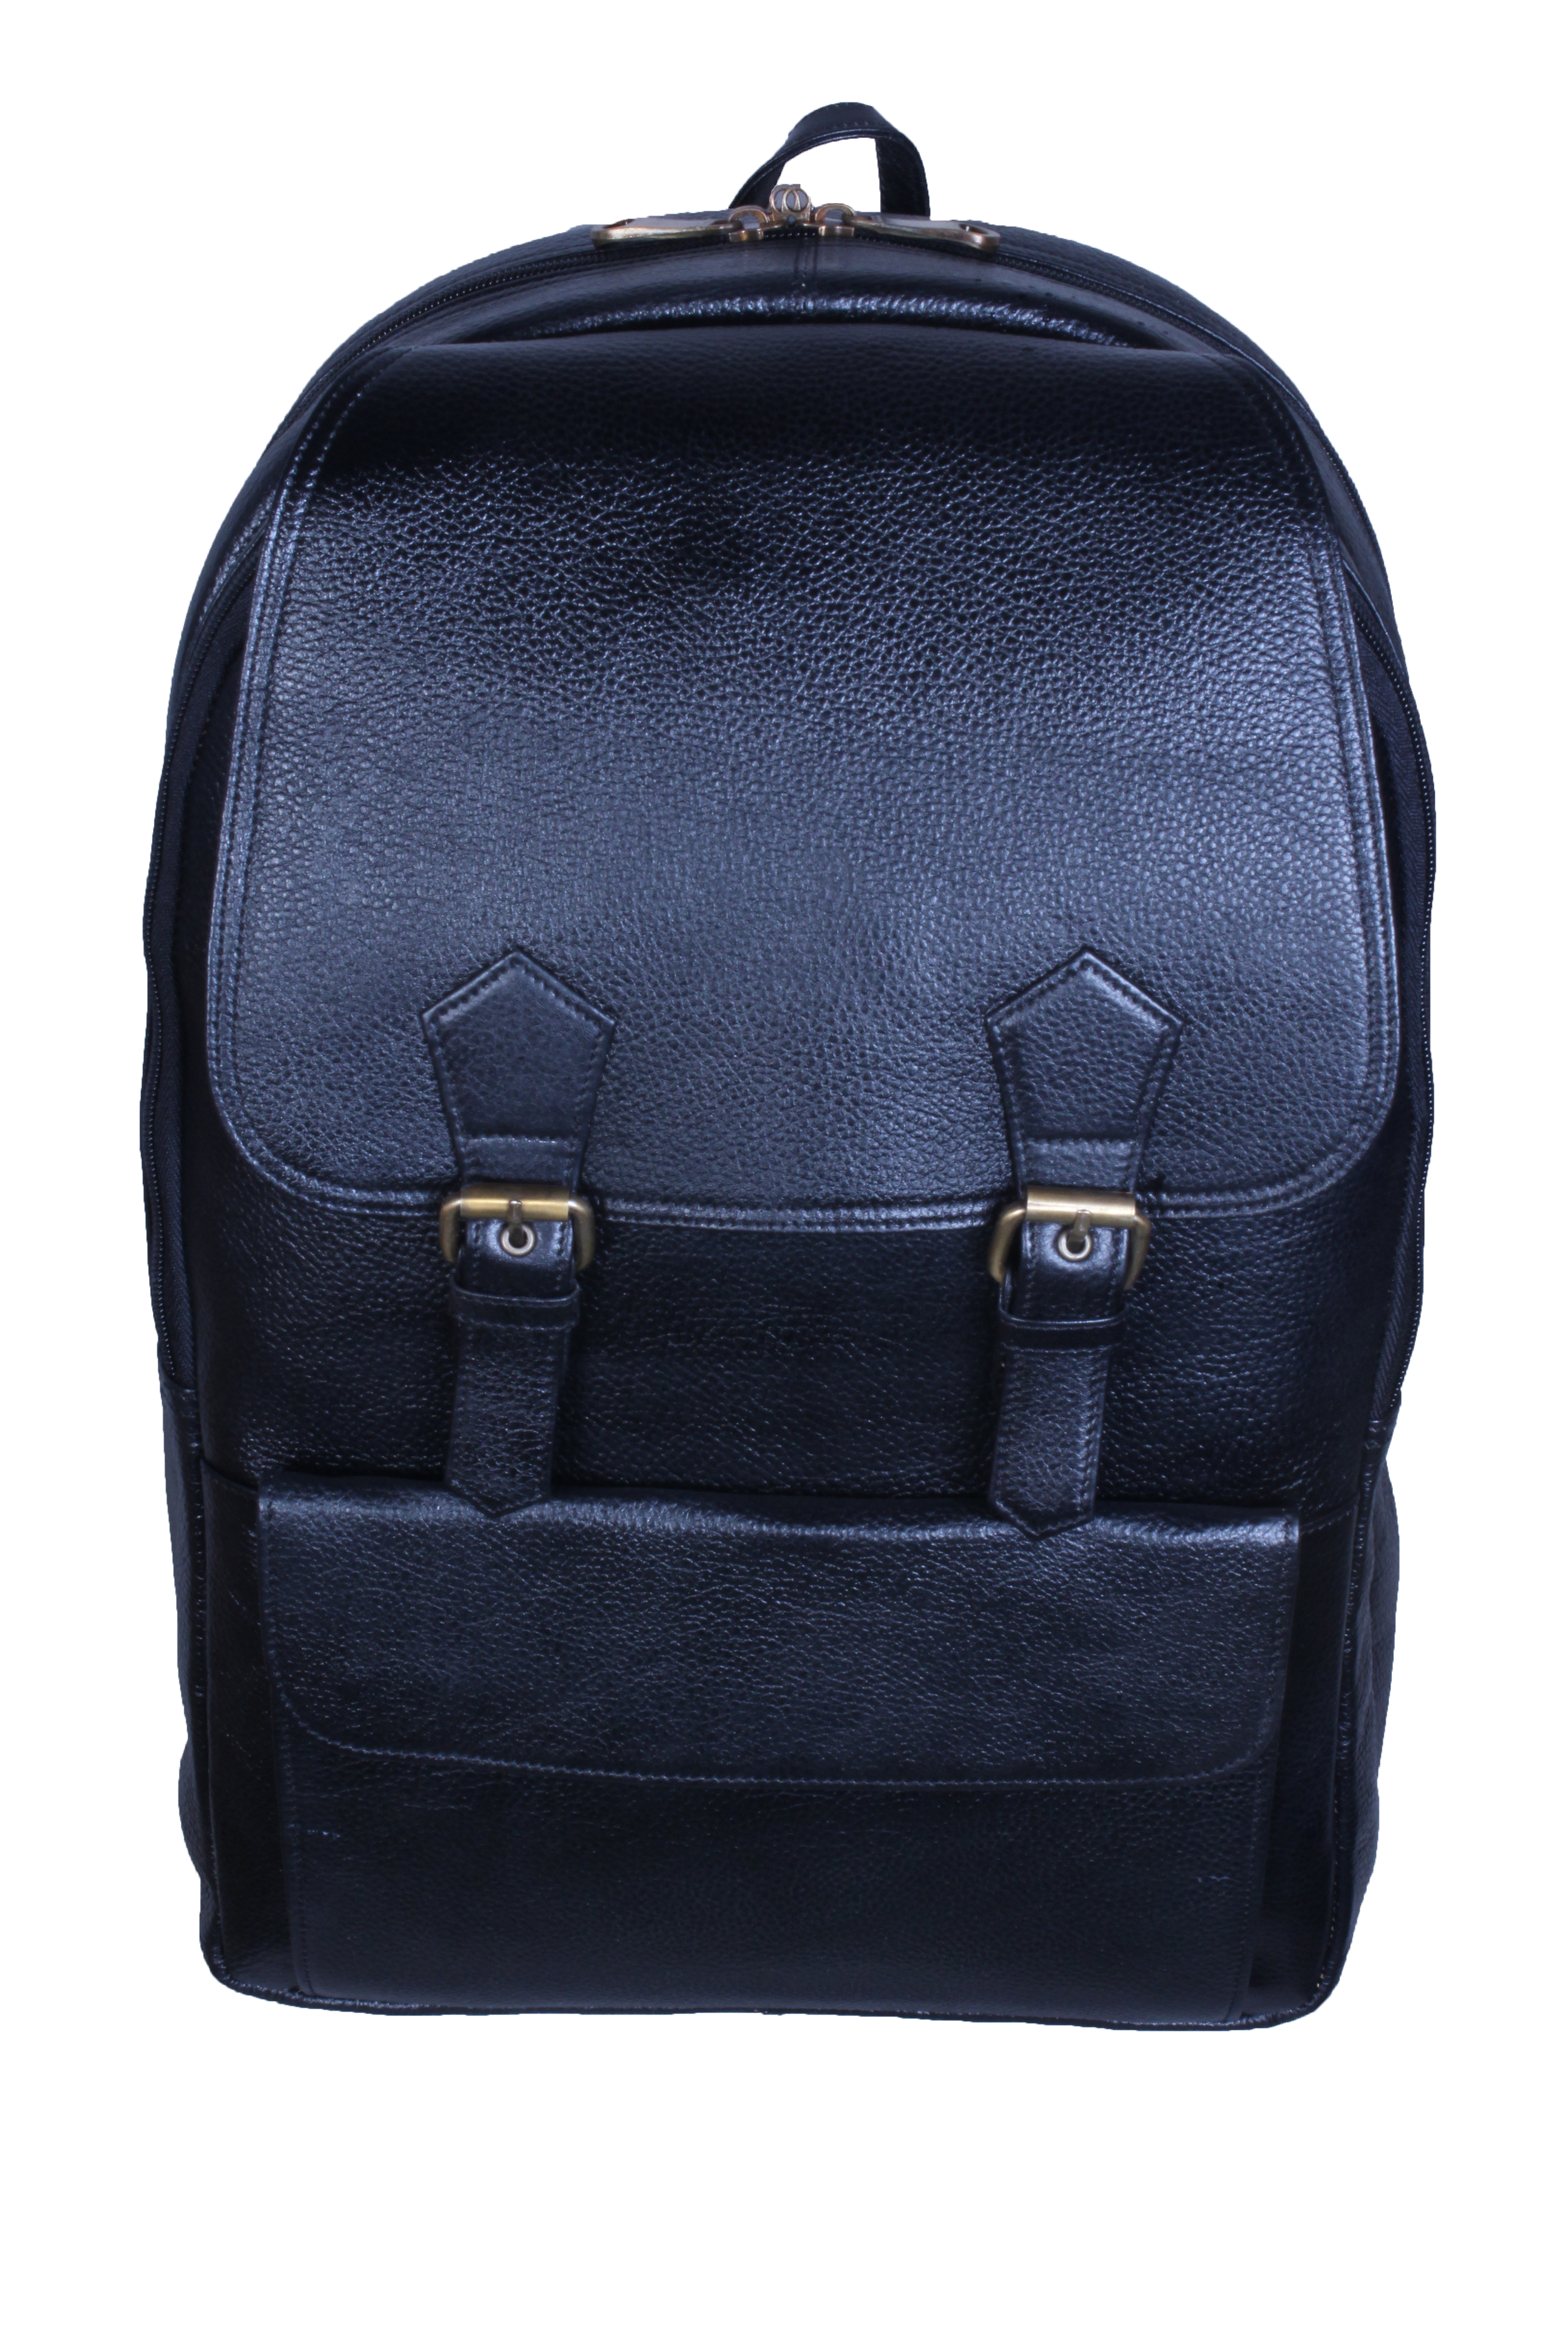 Leather laptop backpack bag for men and women 2B  7c62bc05db